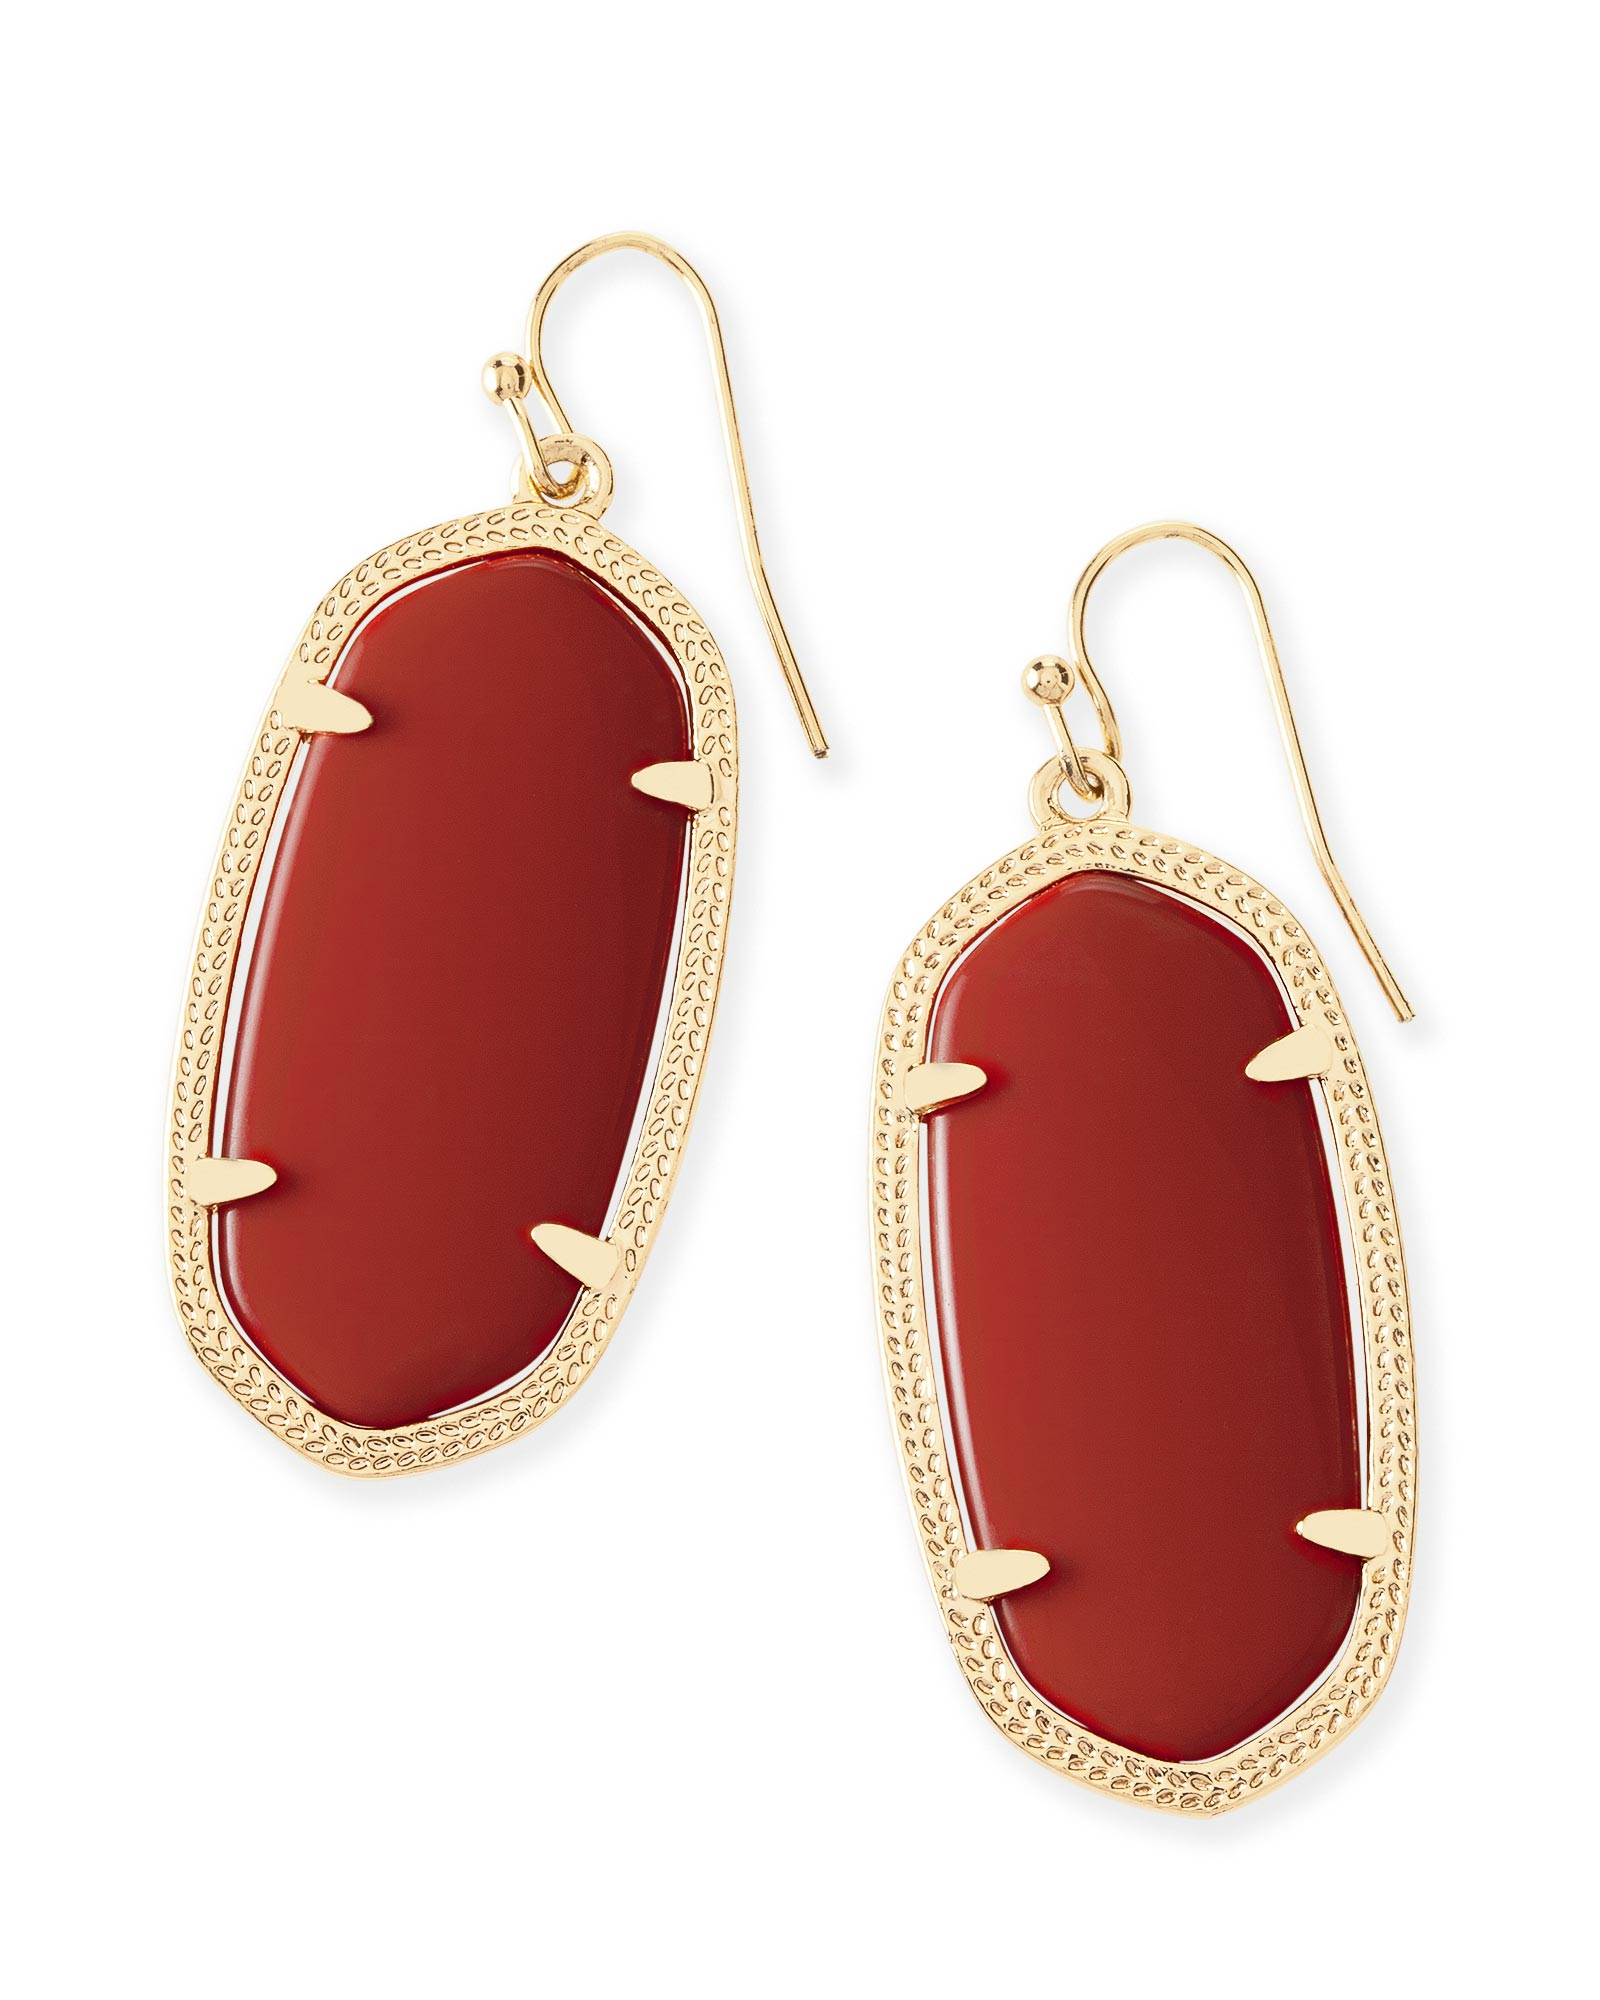 Elle Gold Drop Earrings In Dark Red